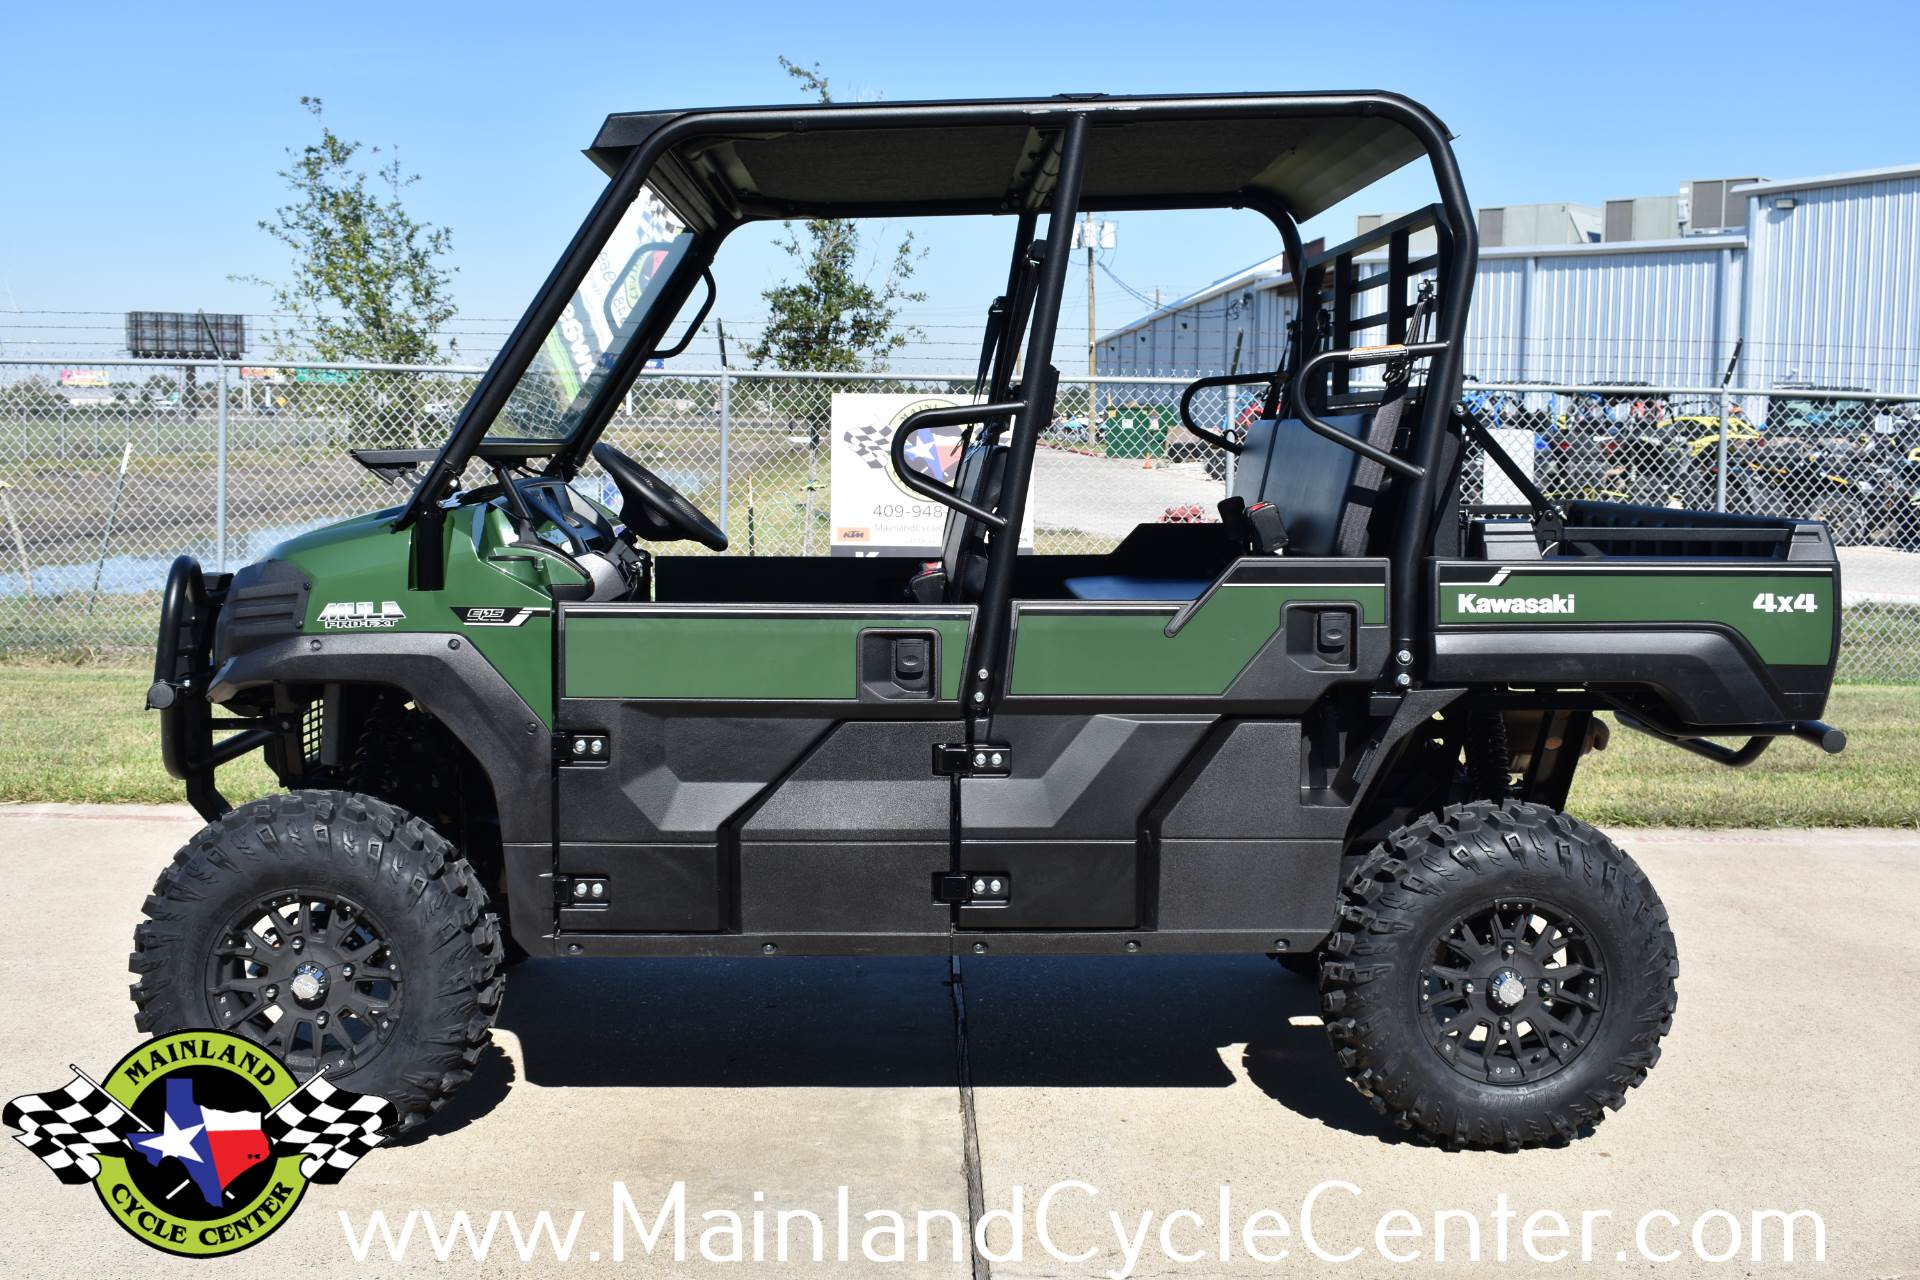 New 2019 Kawasaki Mule PRO-FXT EPS Timberline Green